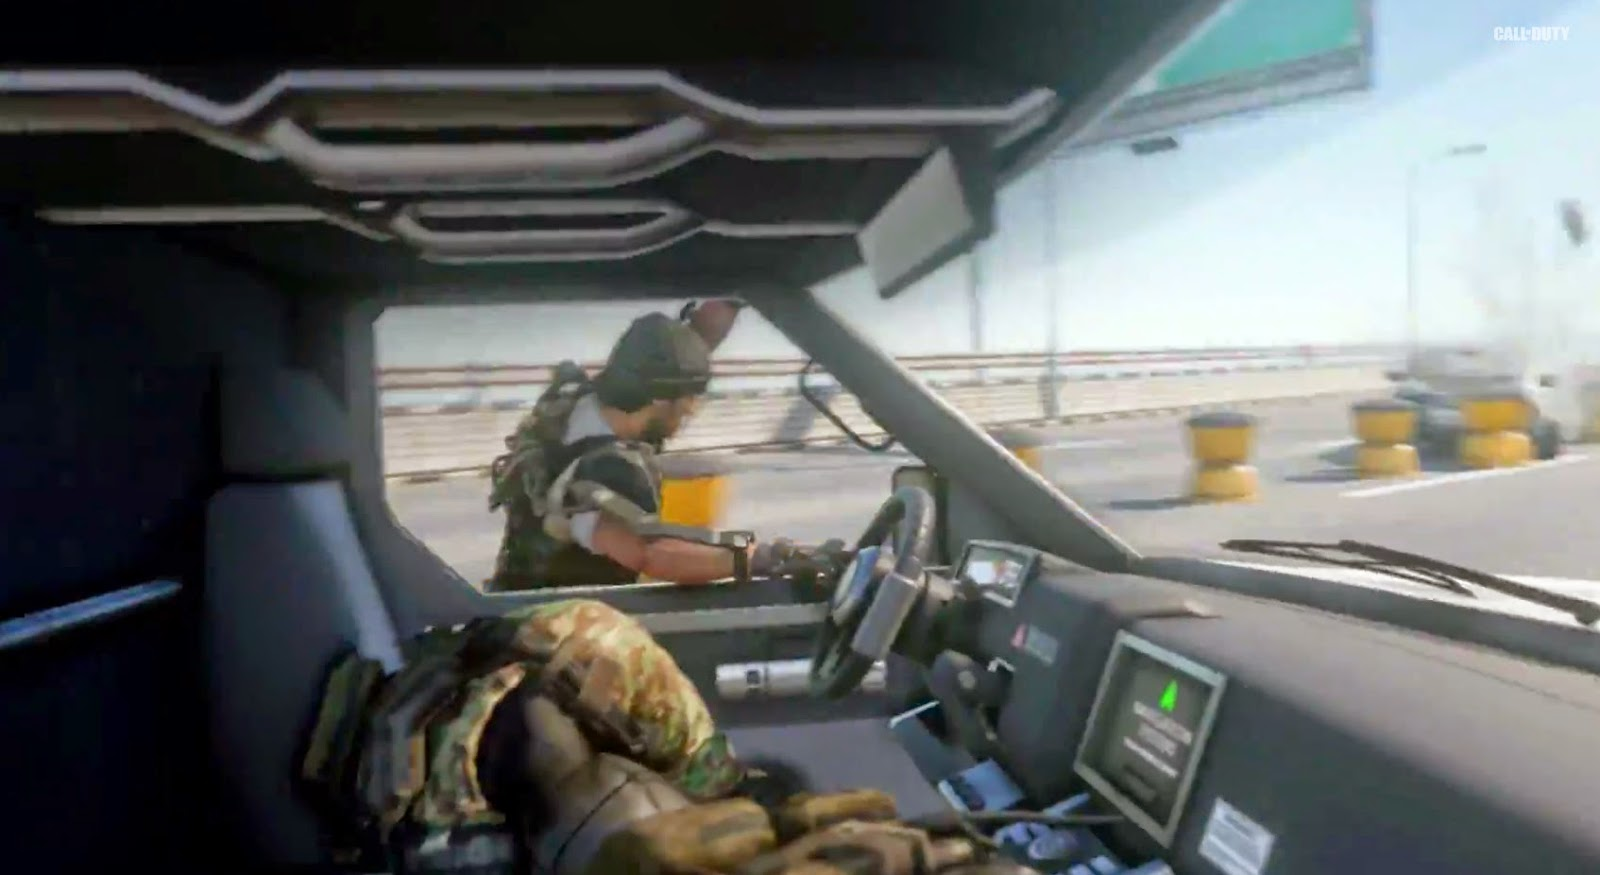 Abloggslife: Call of Duty Advanced Warfare Pics